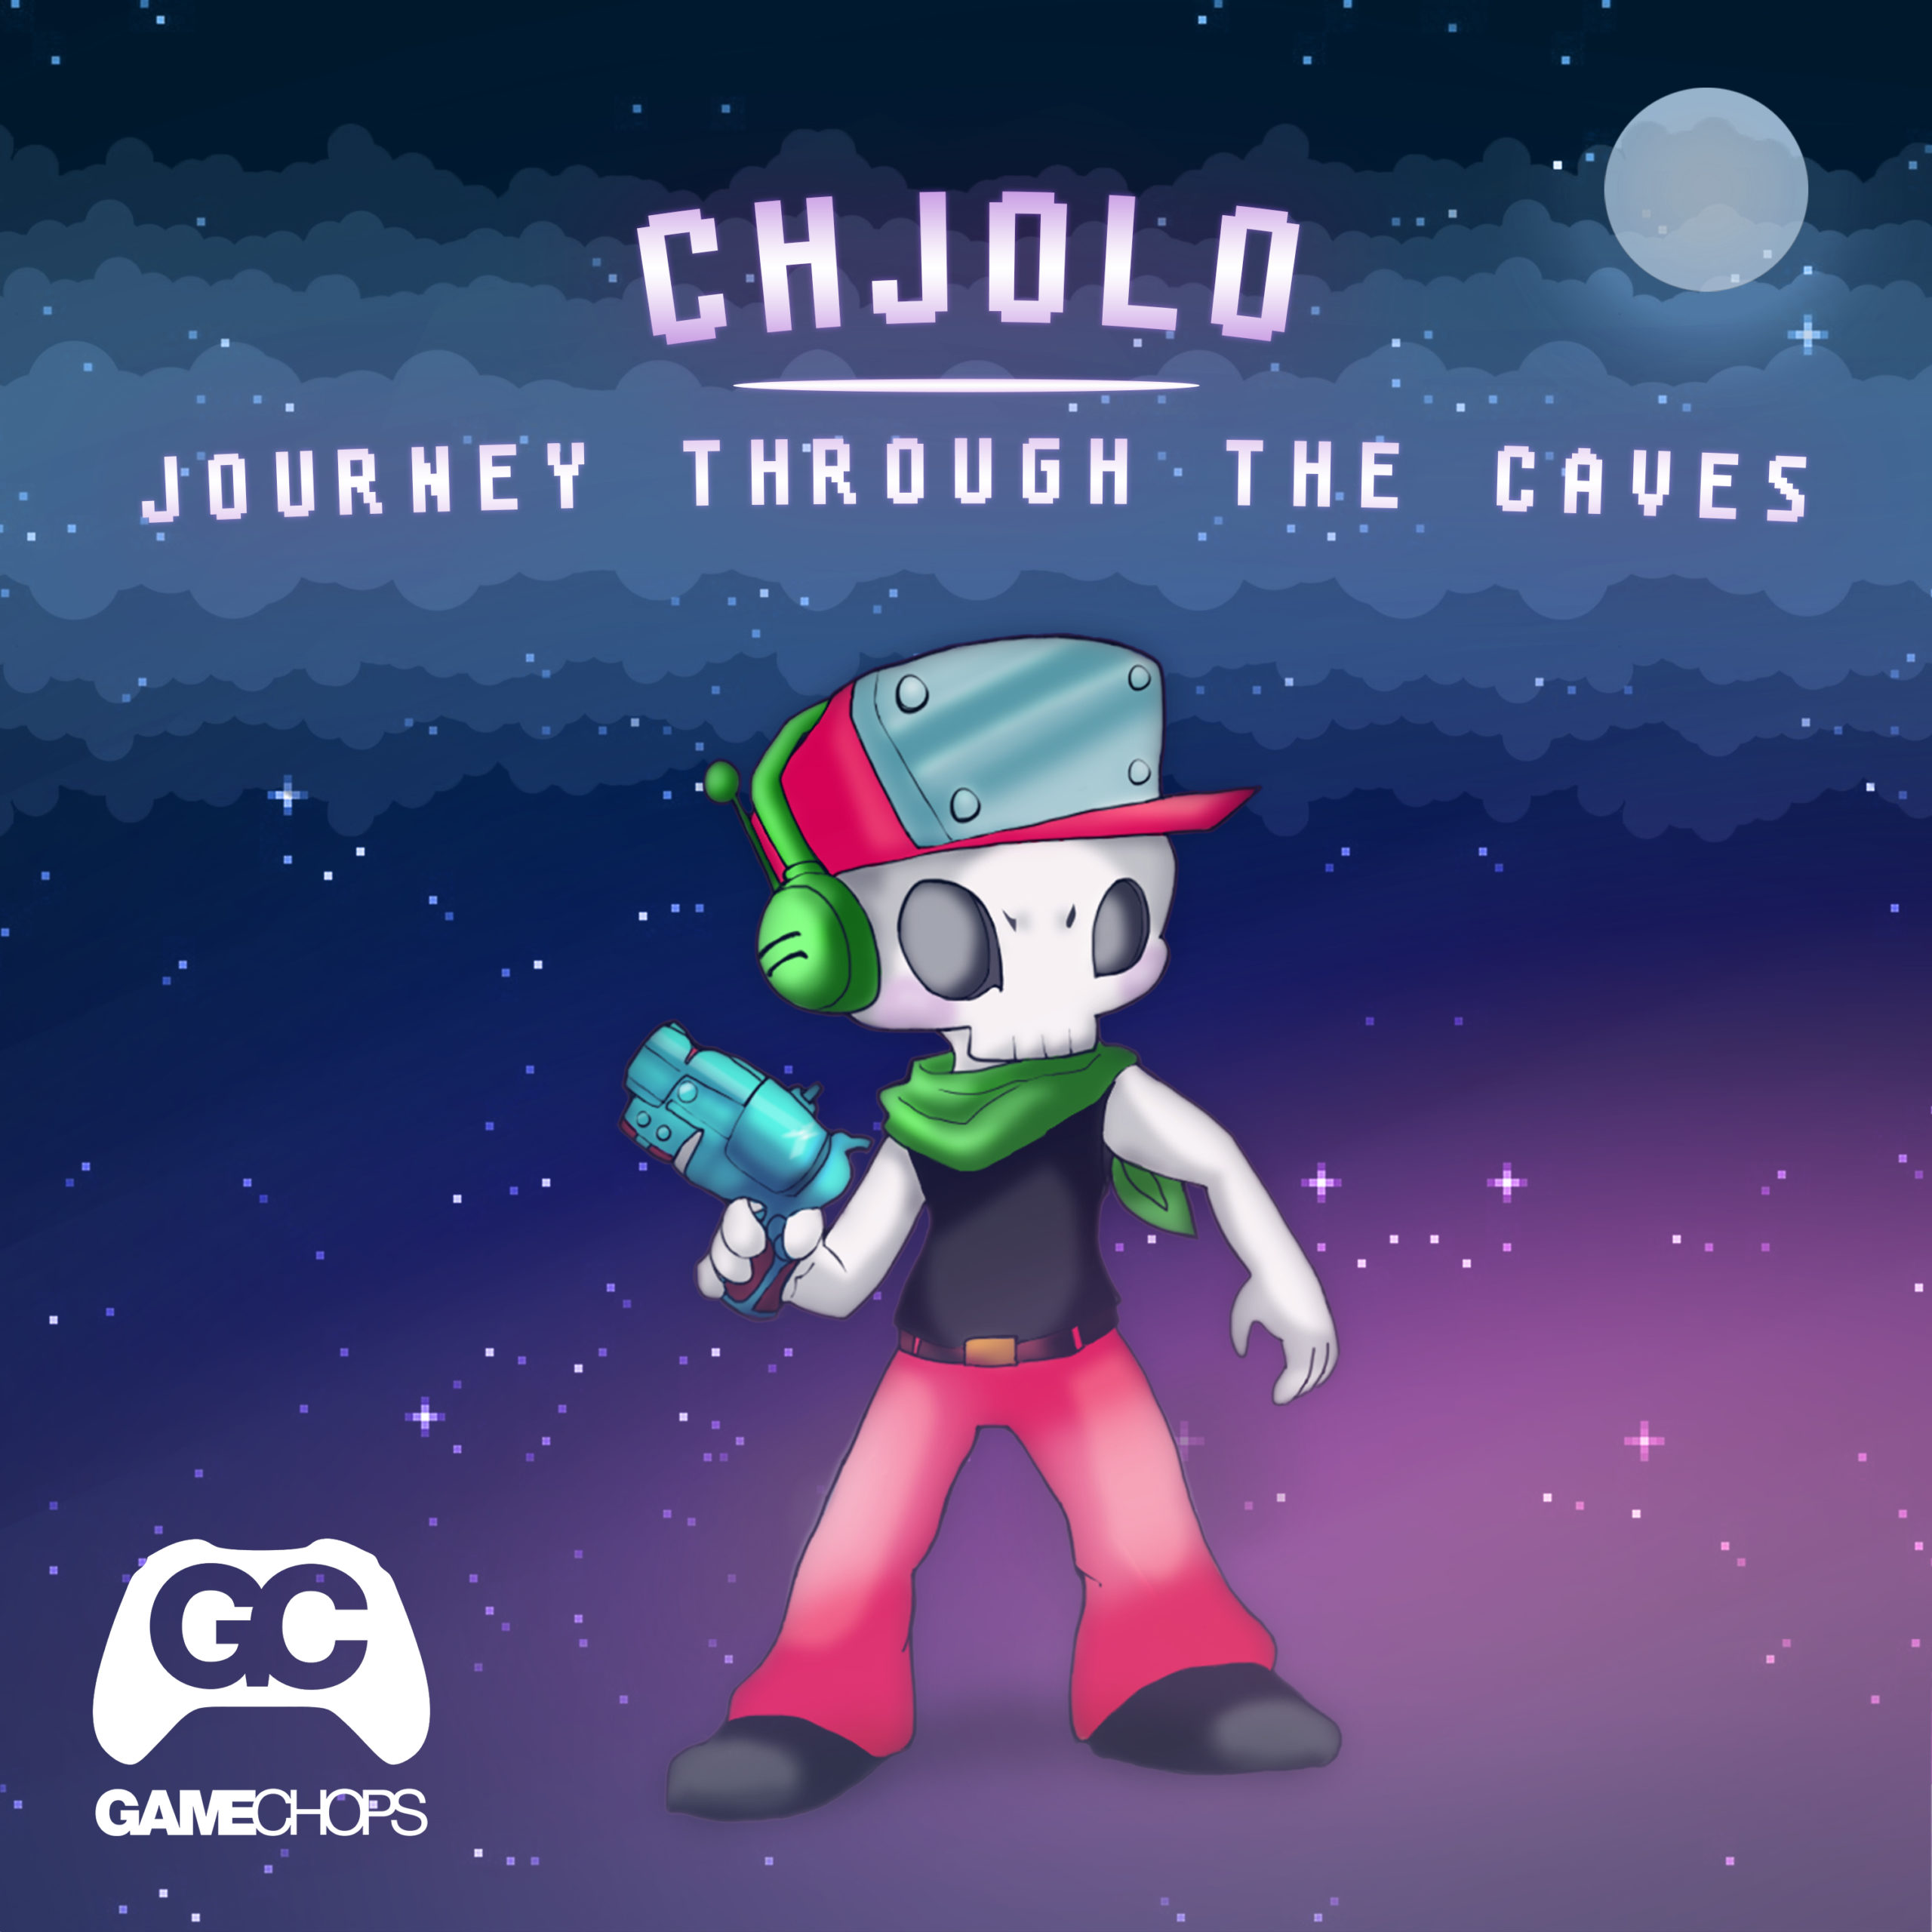 Journey Through the Caves